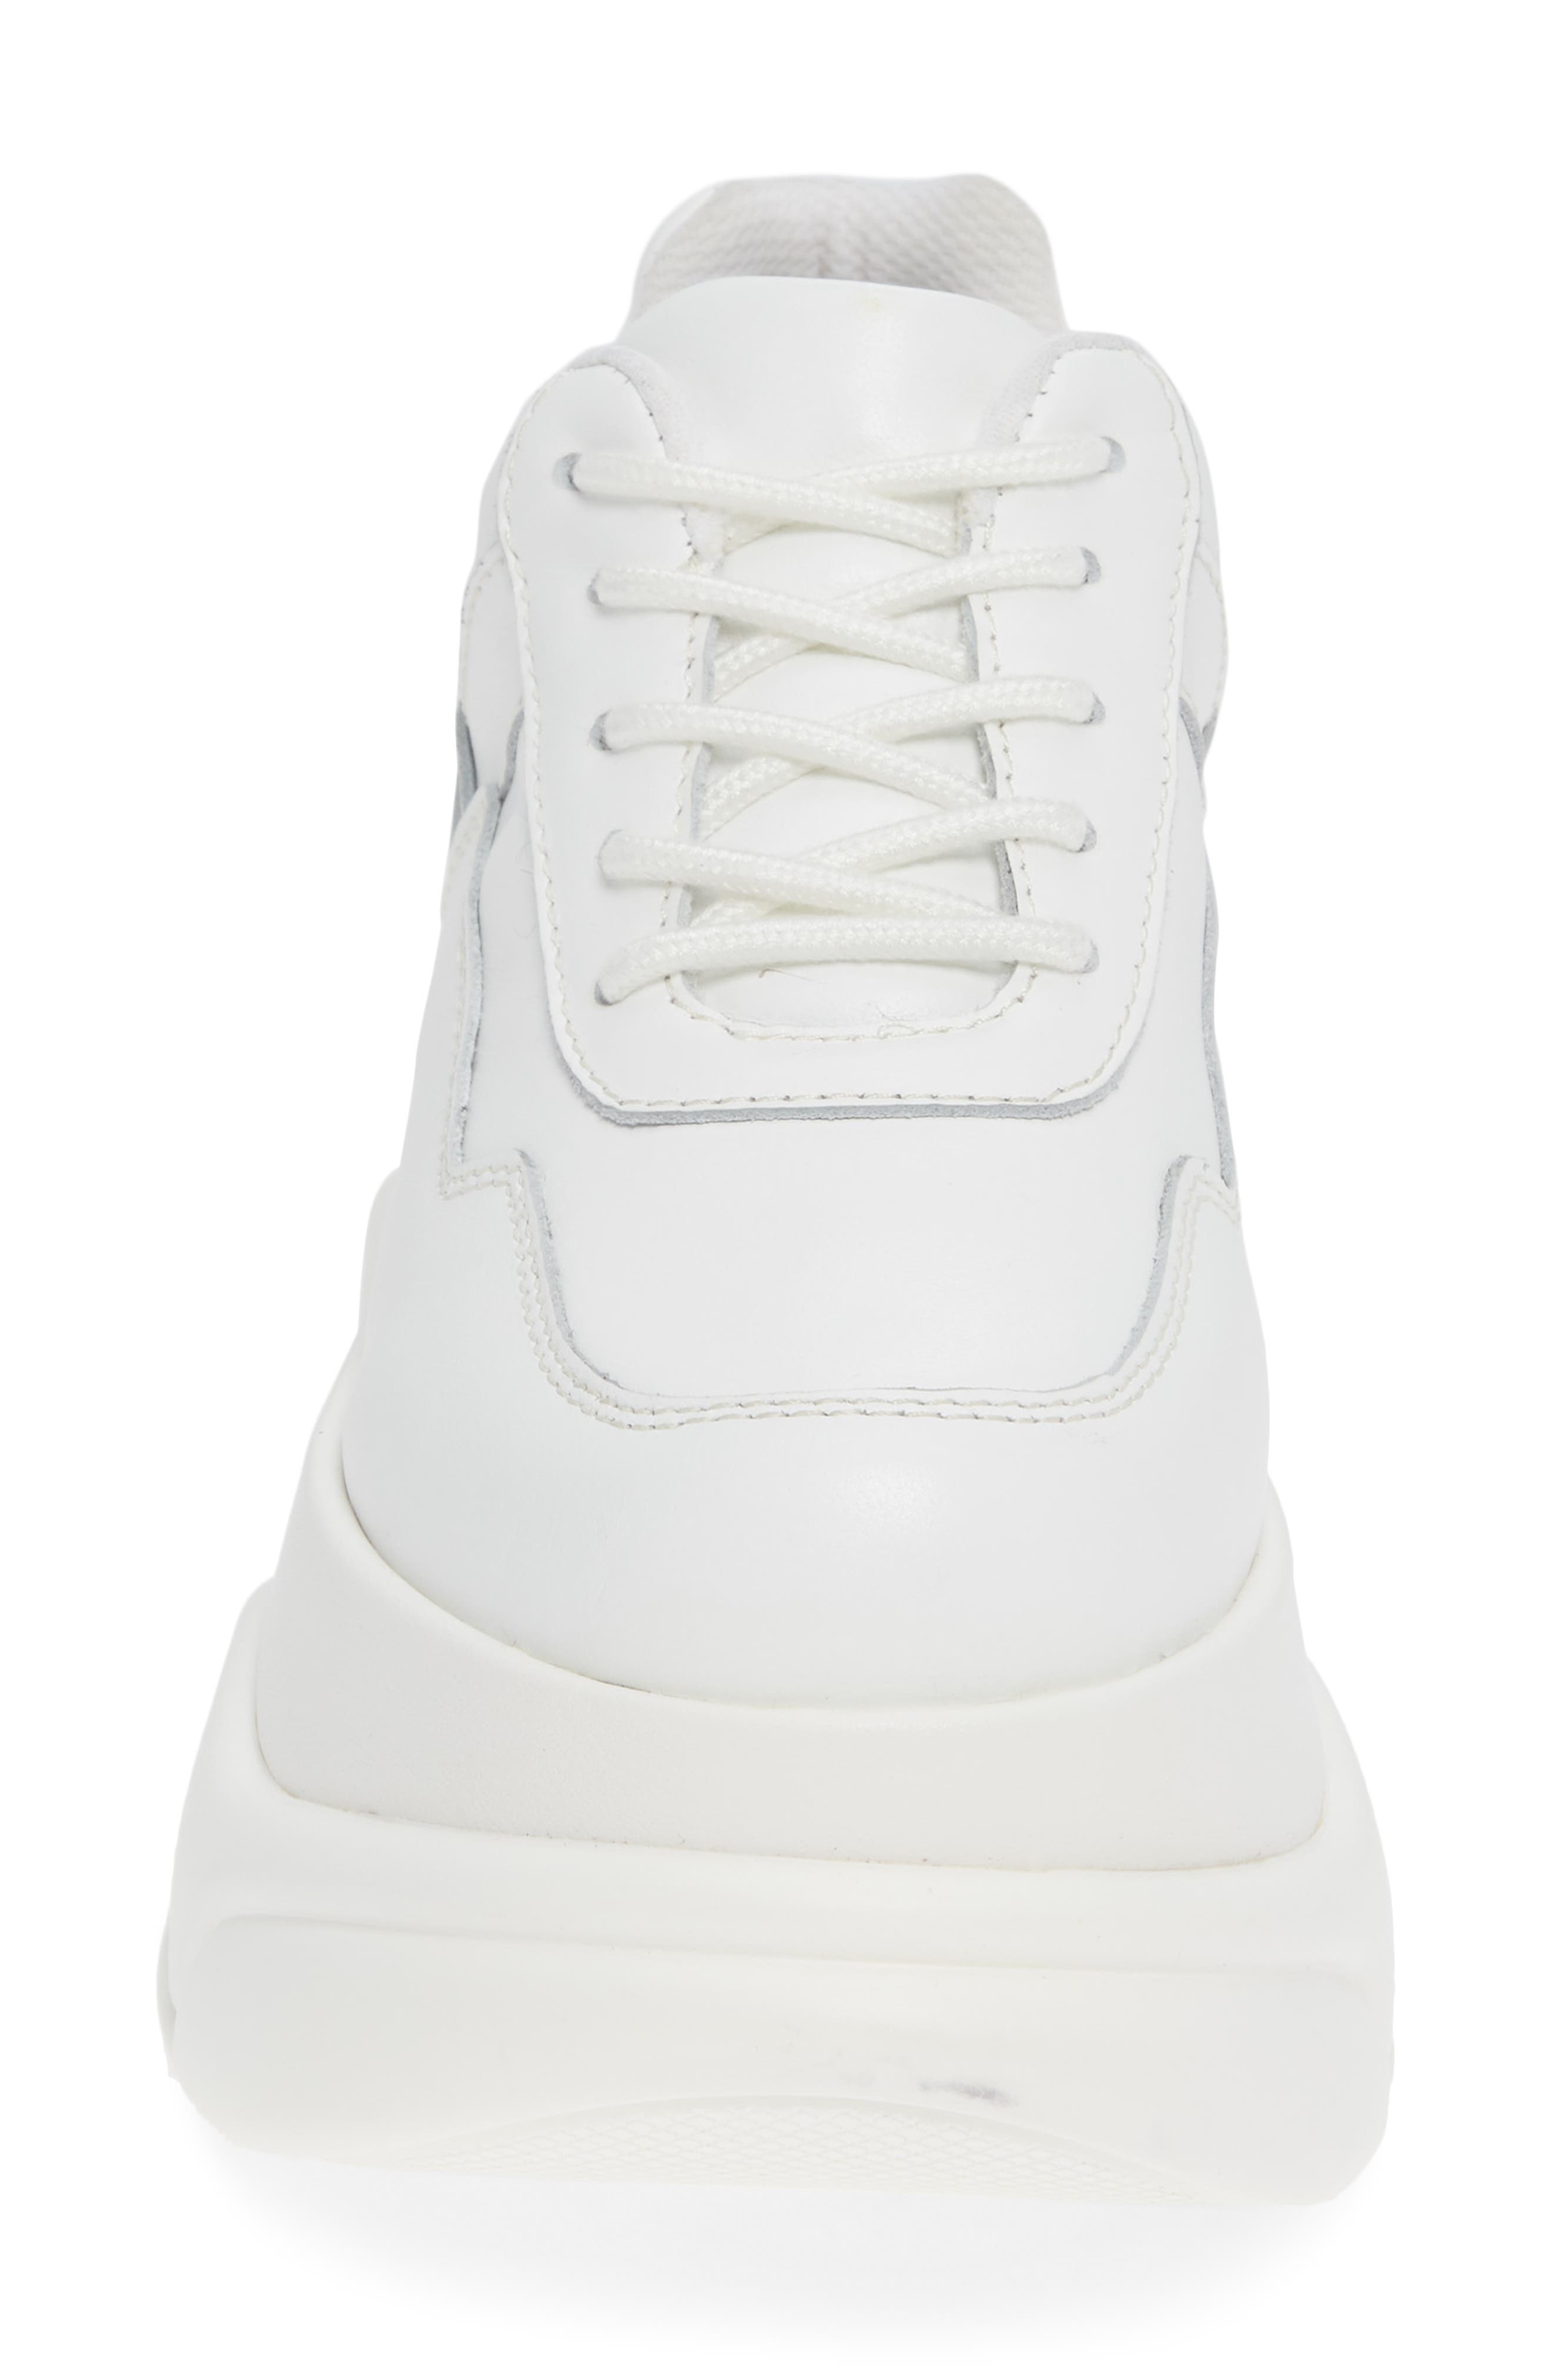 JEFFREY CAMPBELL, Most Def Wedge Sneaker, Alternate thumbnail 4, color, WHITE/ WHITE LEATHER